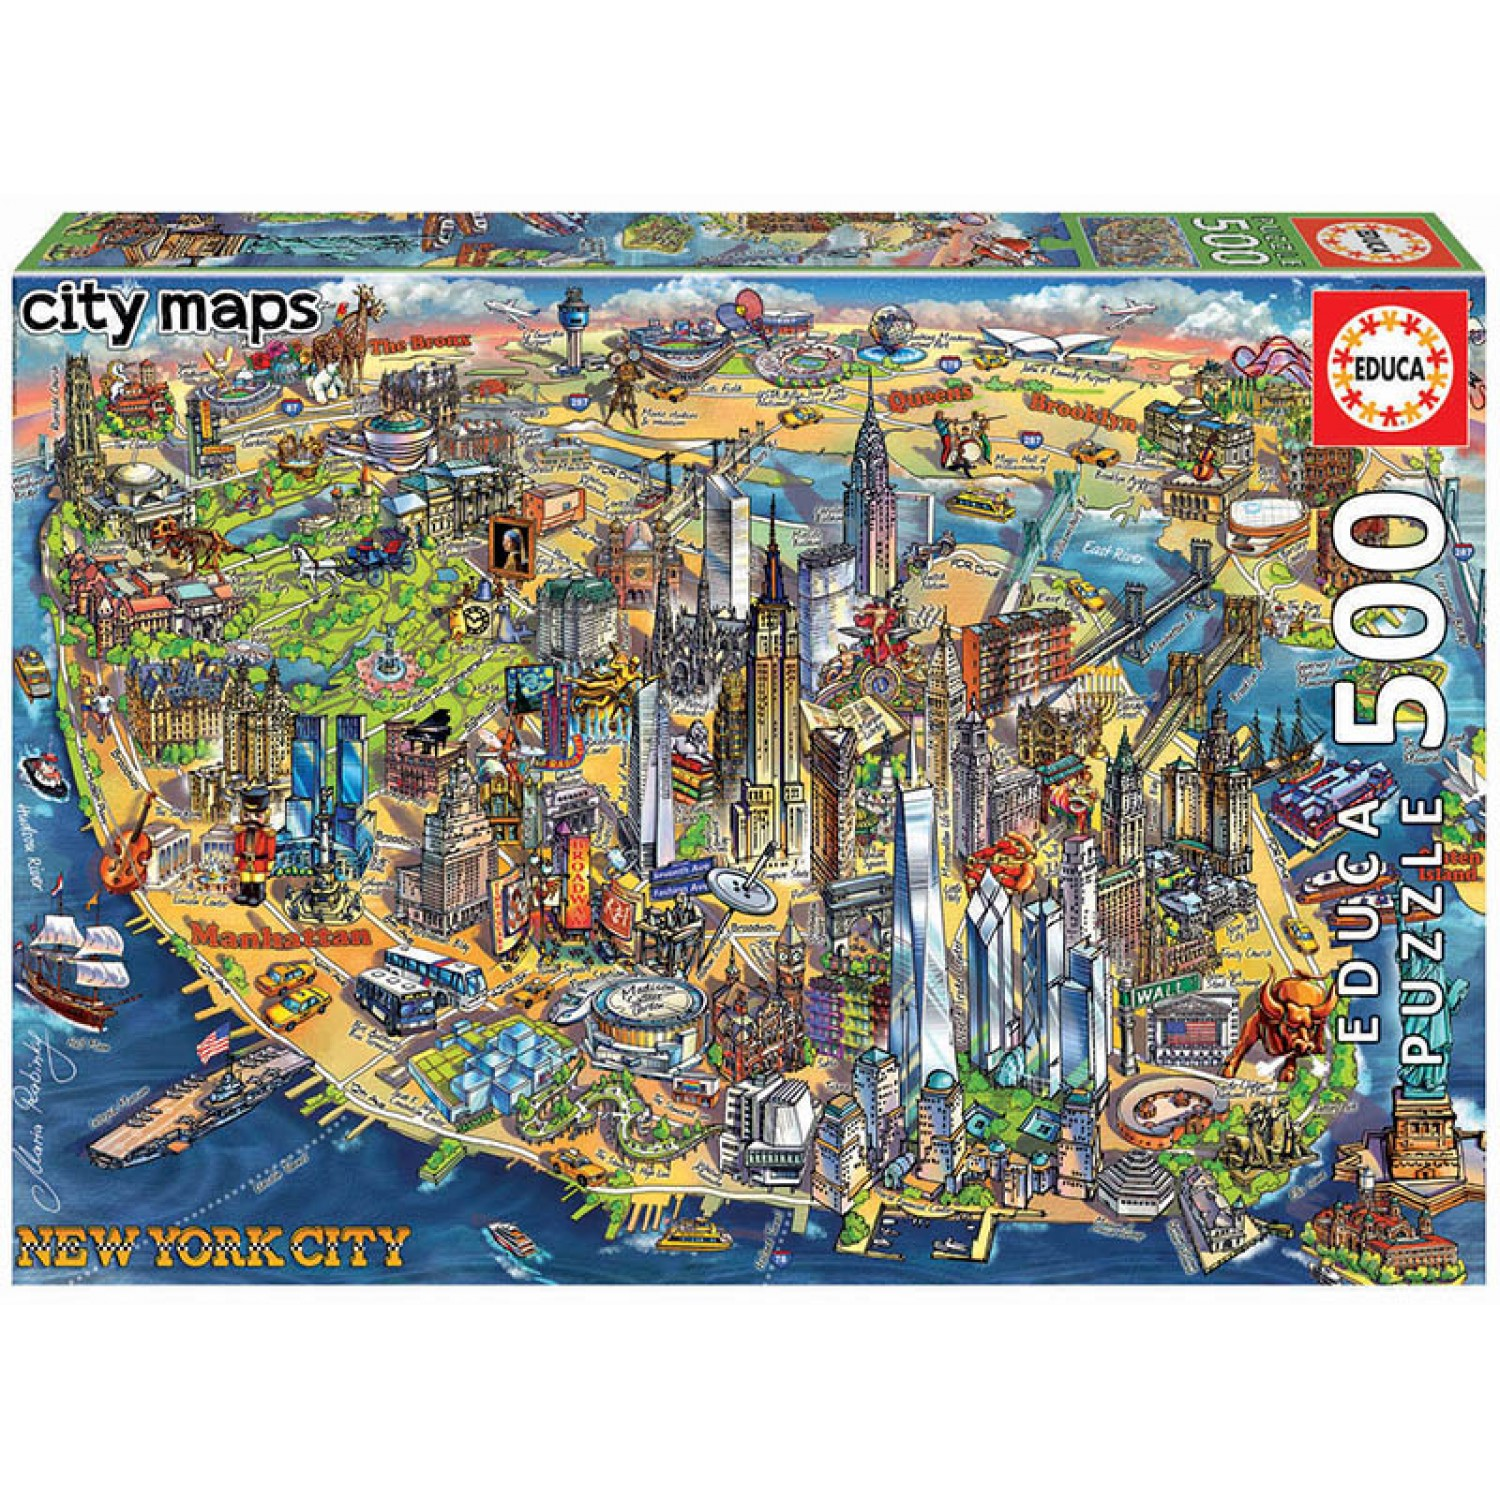 EDUCA 500 ΤΜΧ New York City map ΠΑΖΛ